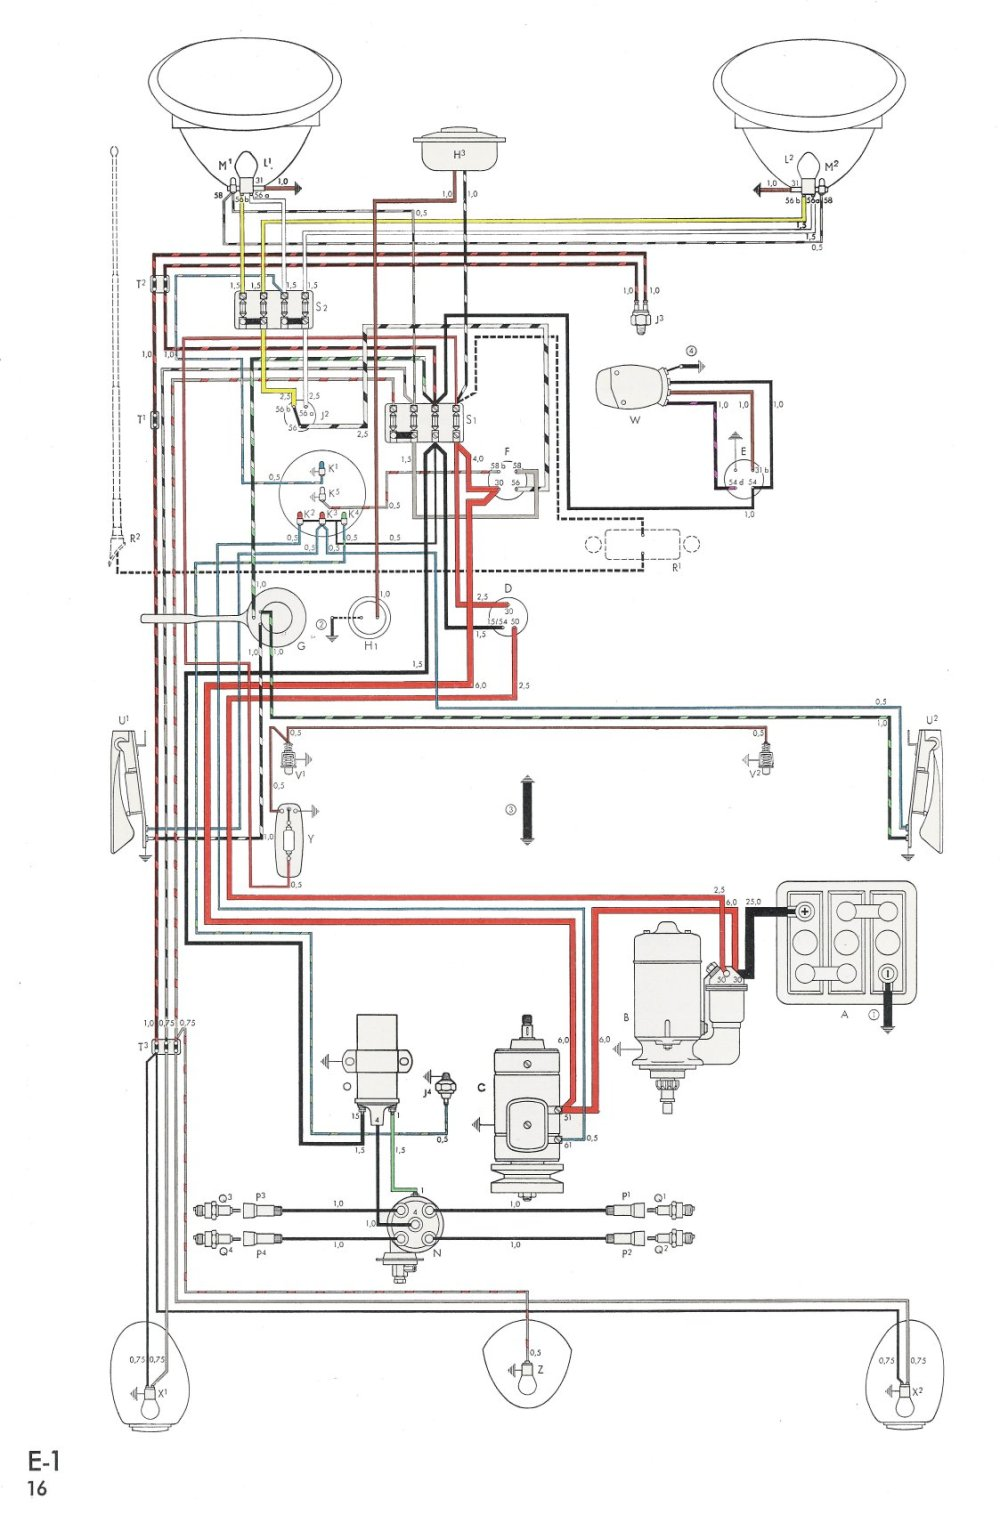 medium resolution of thesamba com type 1 wiring diagrams vw light switch wiring 58 vw alternator wiring